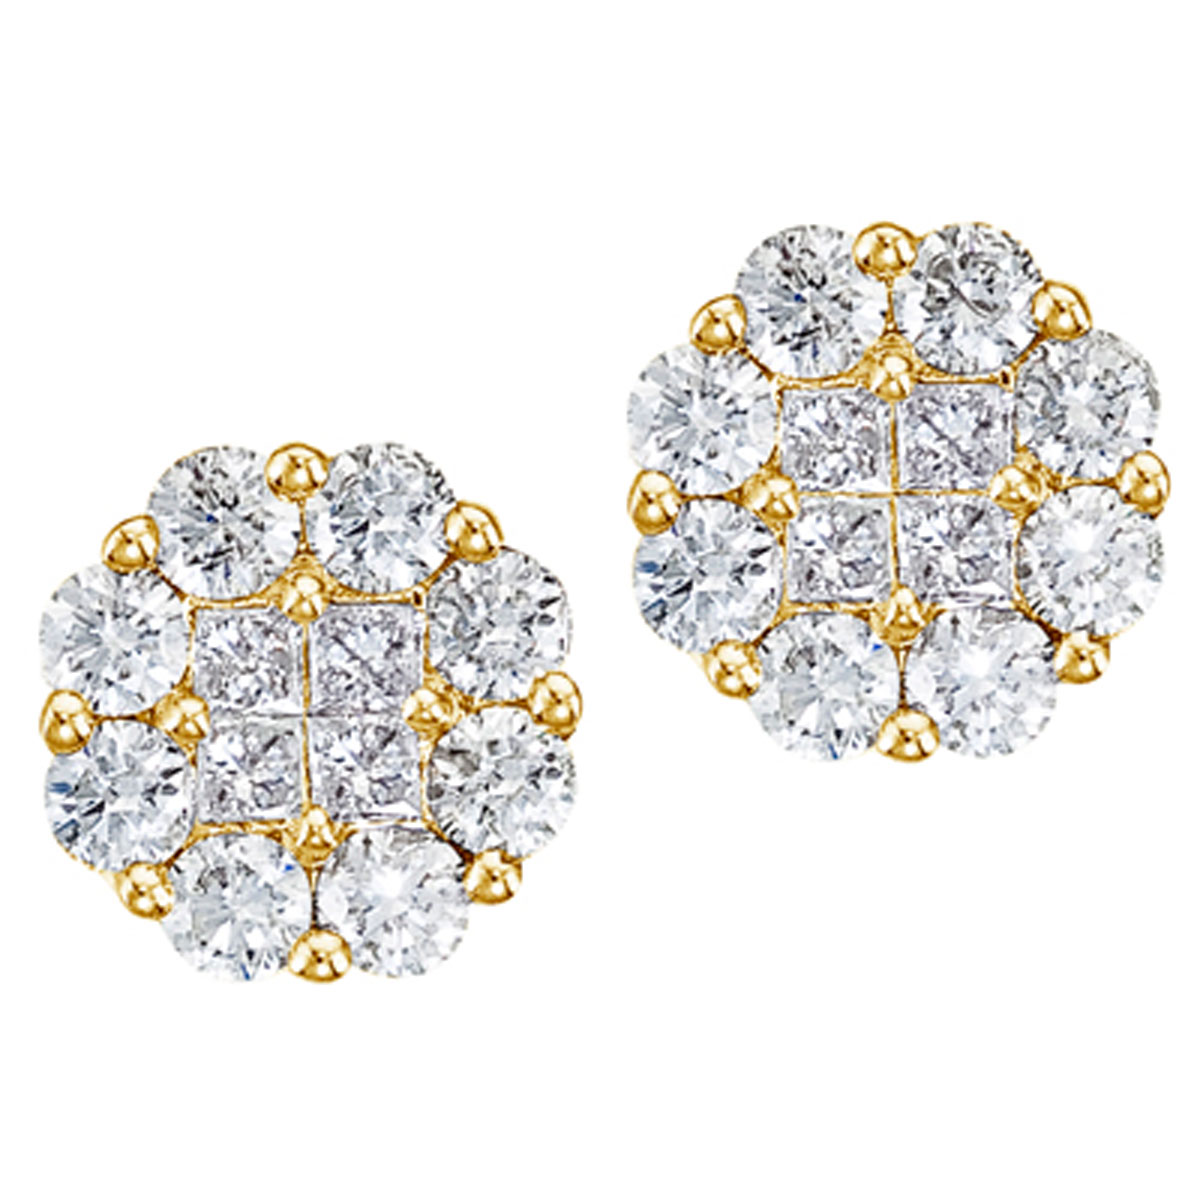 Gorgeous 14k yellow gold earrings with 1.50 total carats of shimmering genuine diamonds. Clustair...